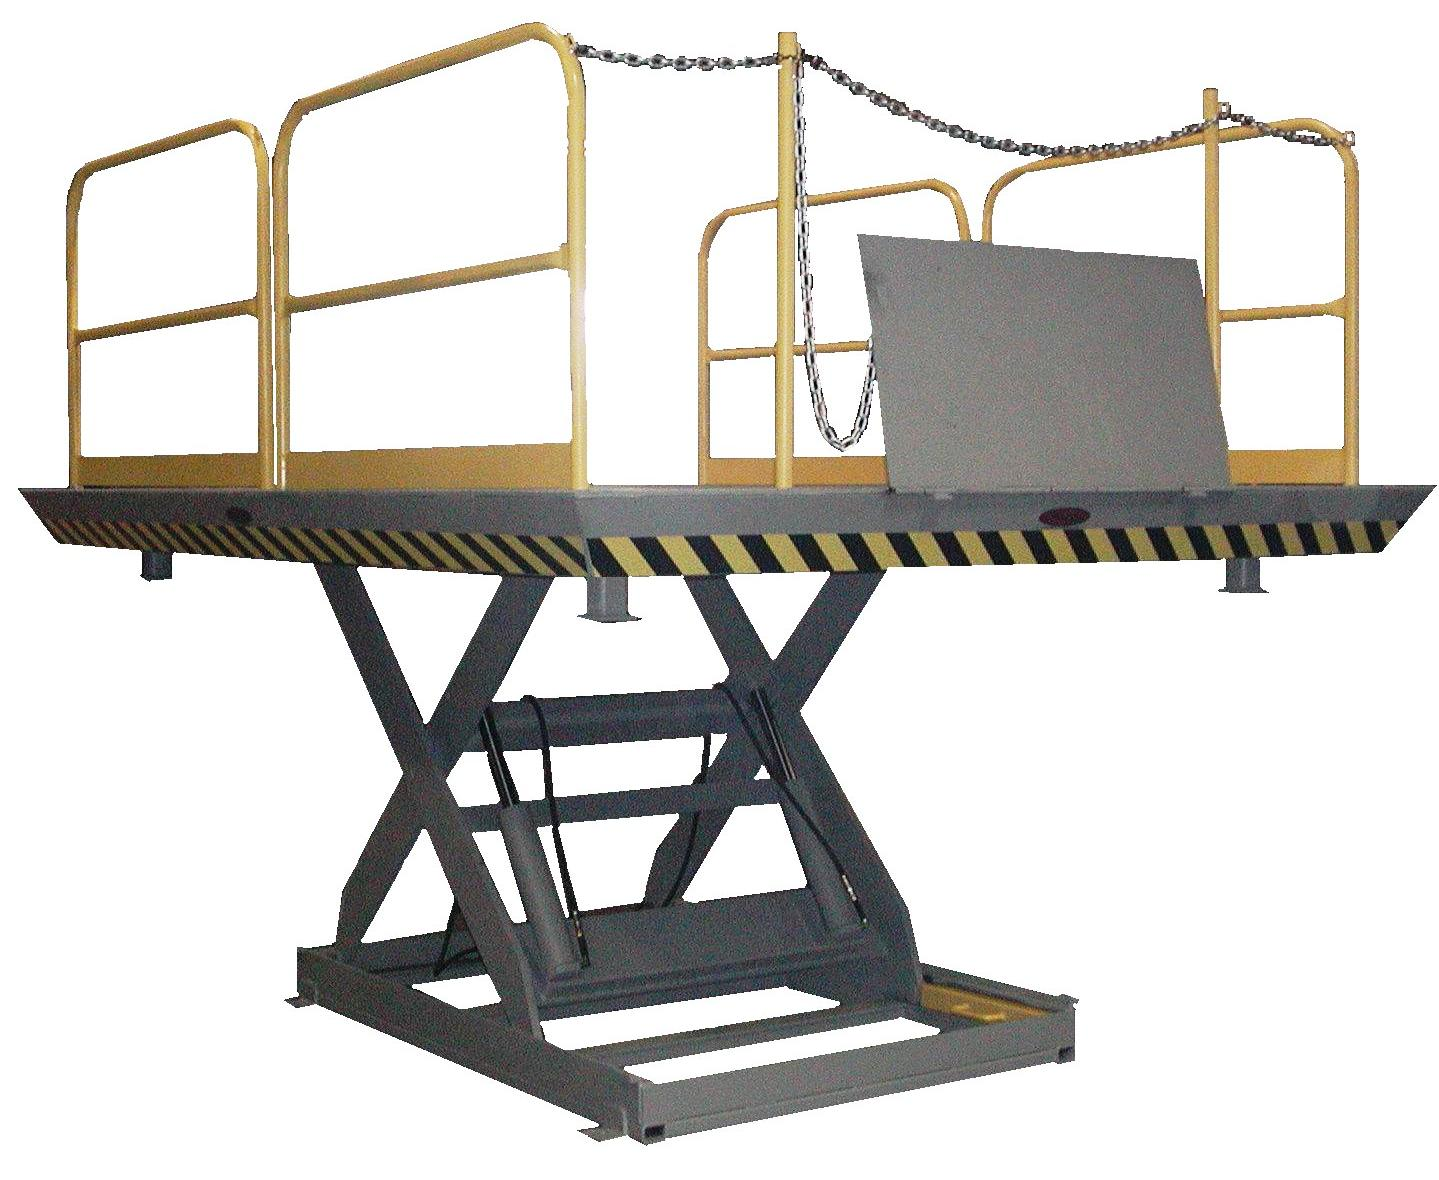 Hydraulic Ramp | Loading Dock Equipment by Copperloy